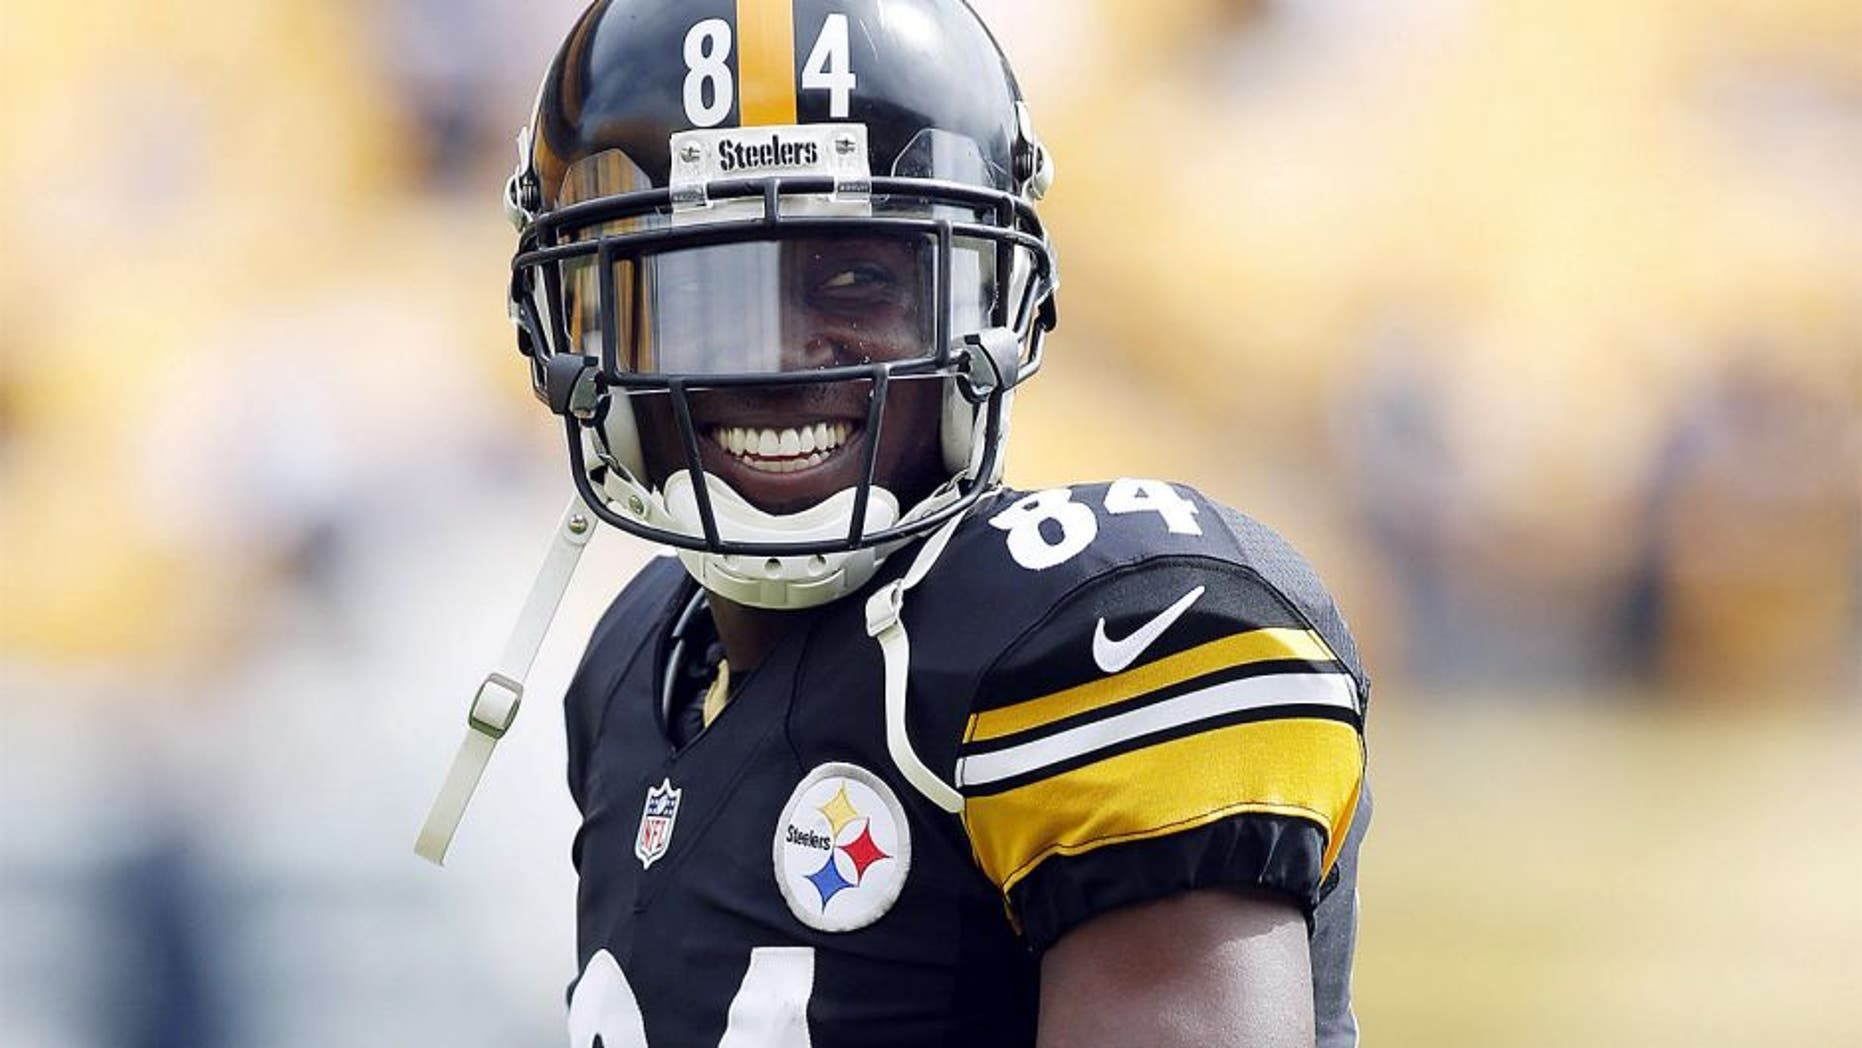 Sep 28, 2014; Pittsburgh, PA, USA; Pittsburgh Steelers wide receiver Antonio Brown (84) smiles on the field before playing the Tampa Bay Buccaneers at Heinz Field. Mandatory Credit: Charles LeClaire-USA TODAY Sports